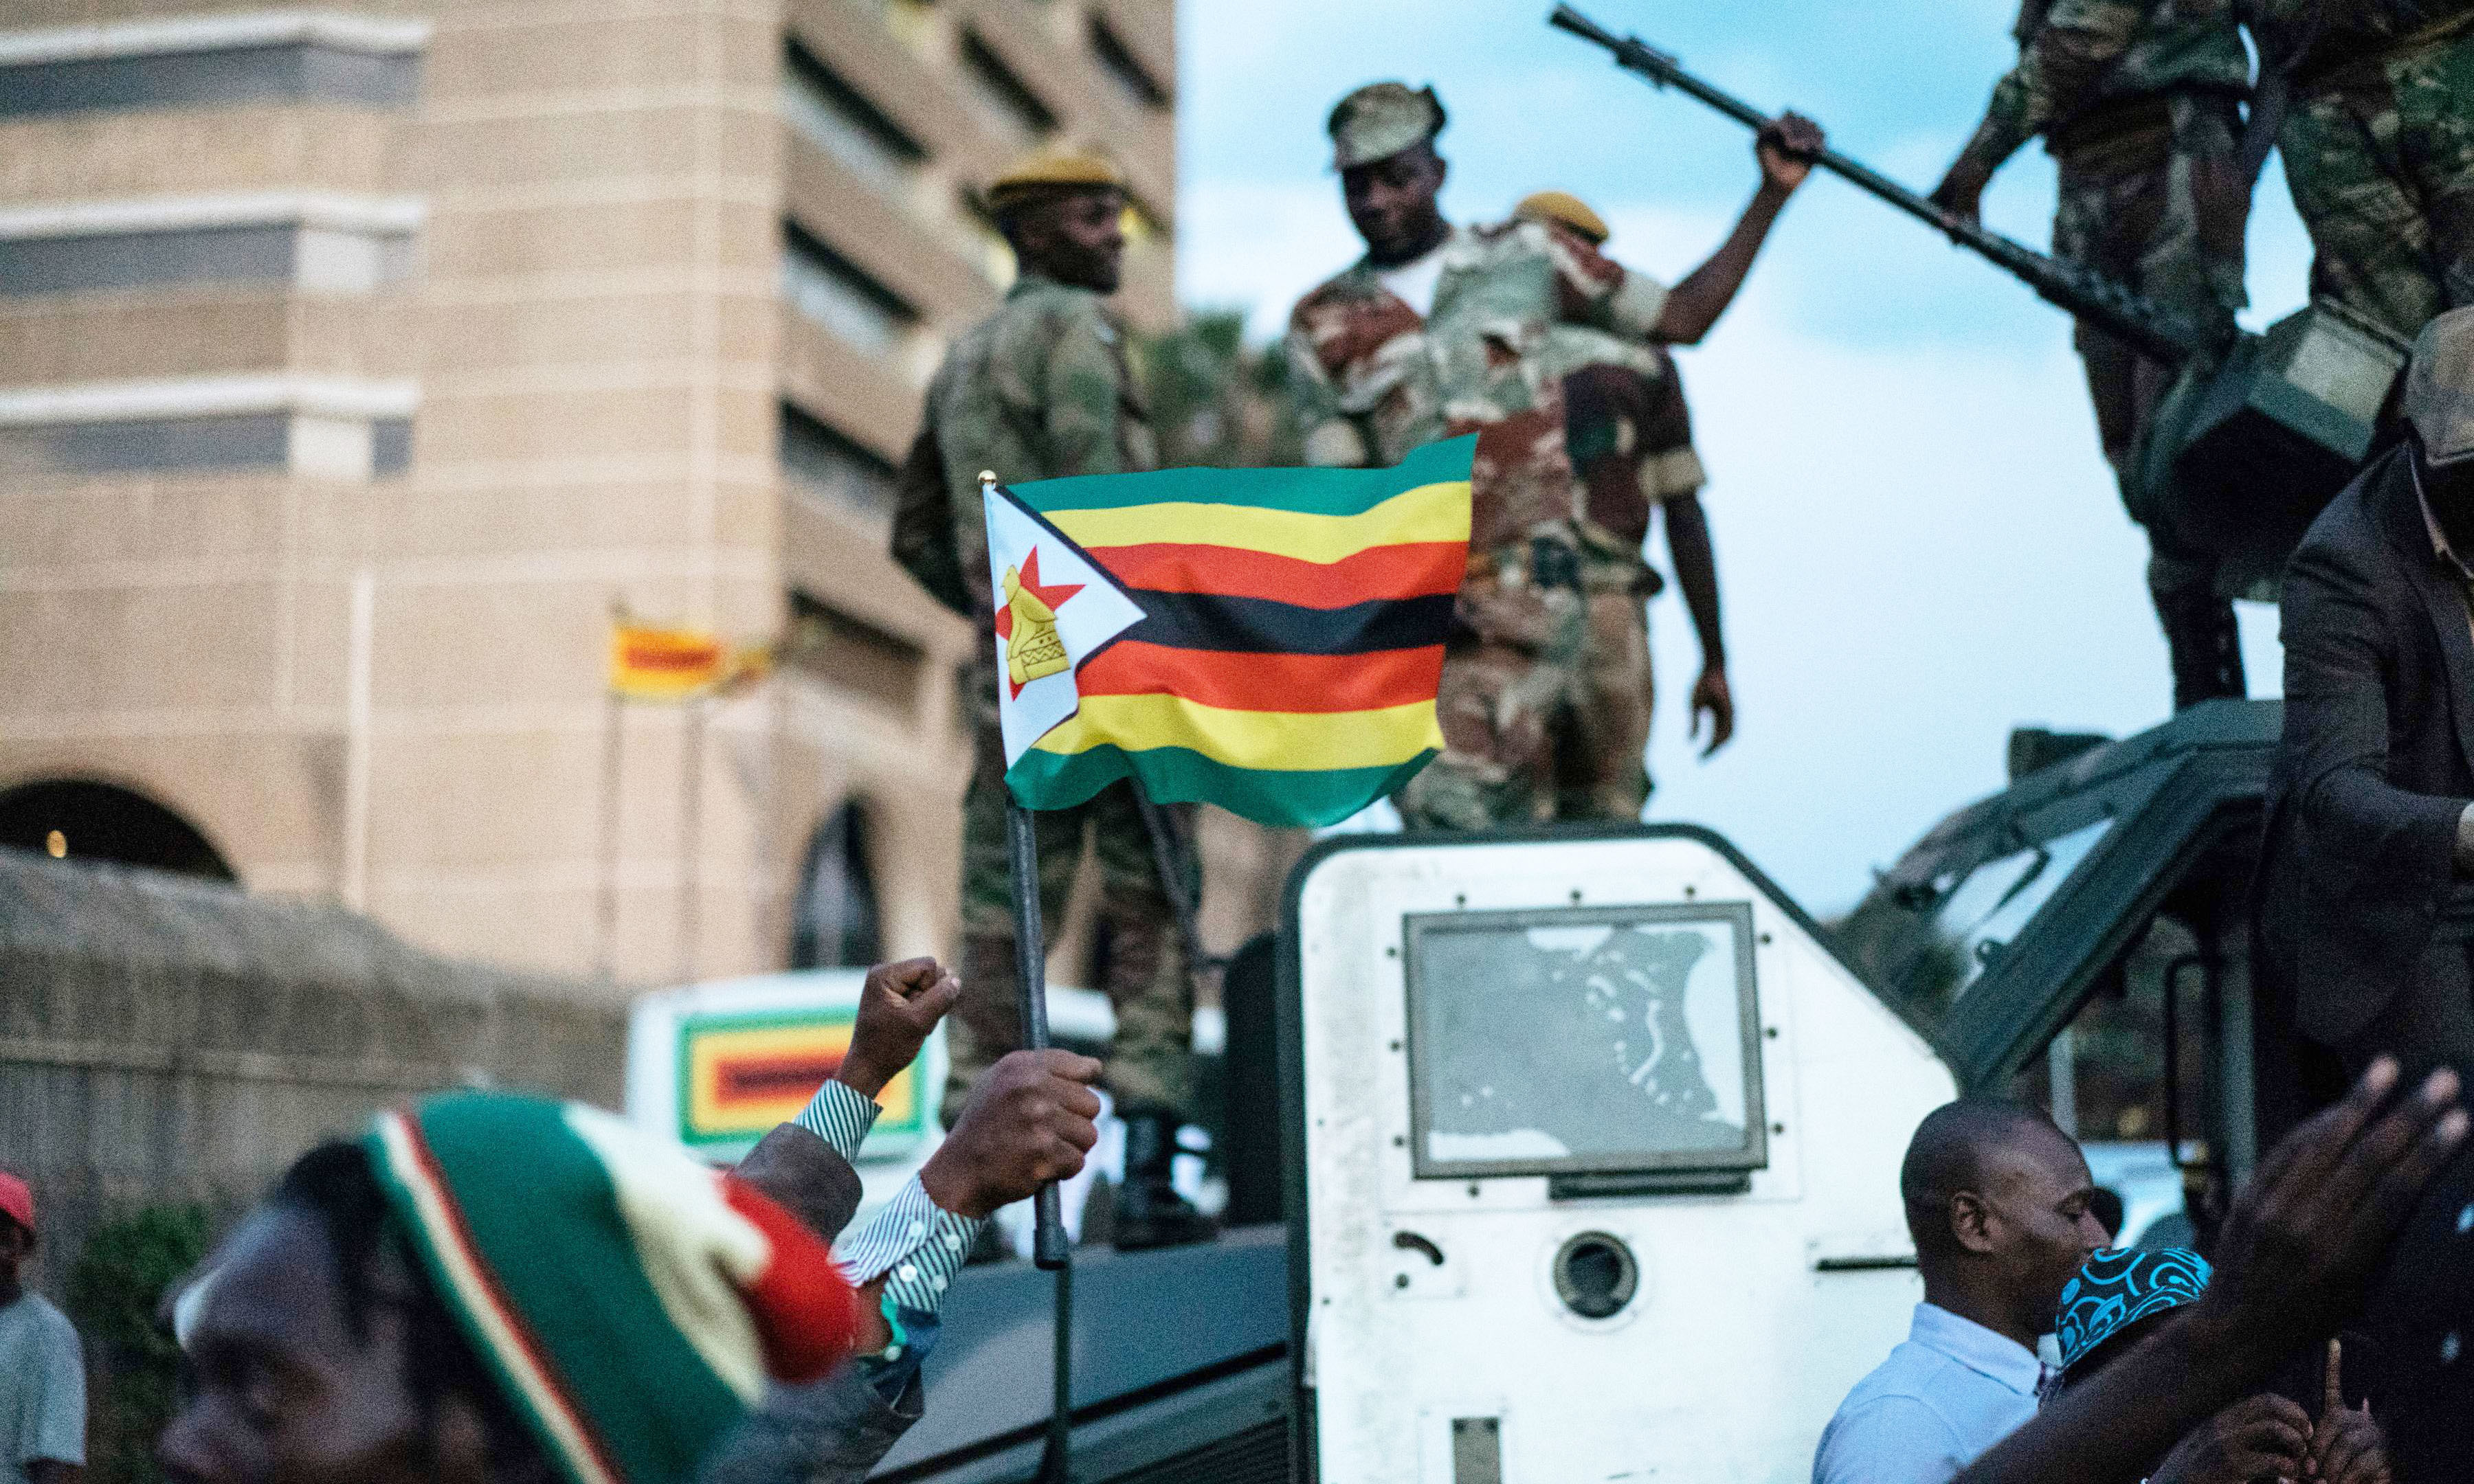 A man holds up the national flag of Zimbabwe as Zimbabwean soldiers are celebrated by citizens in the streets in Harare, on November 21, 2017 after the resignation of Zimbabwe's president Robert Mugabe. —AFP